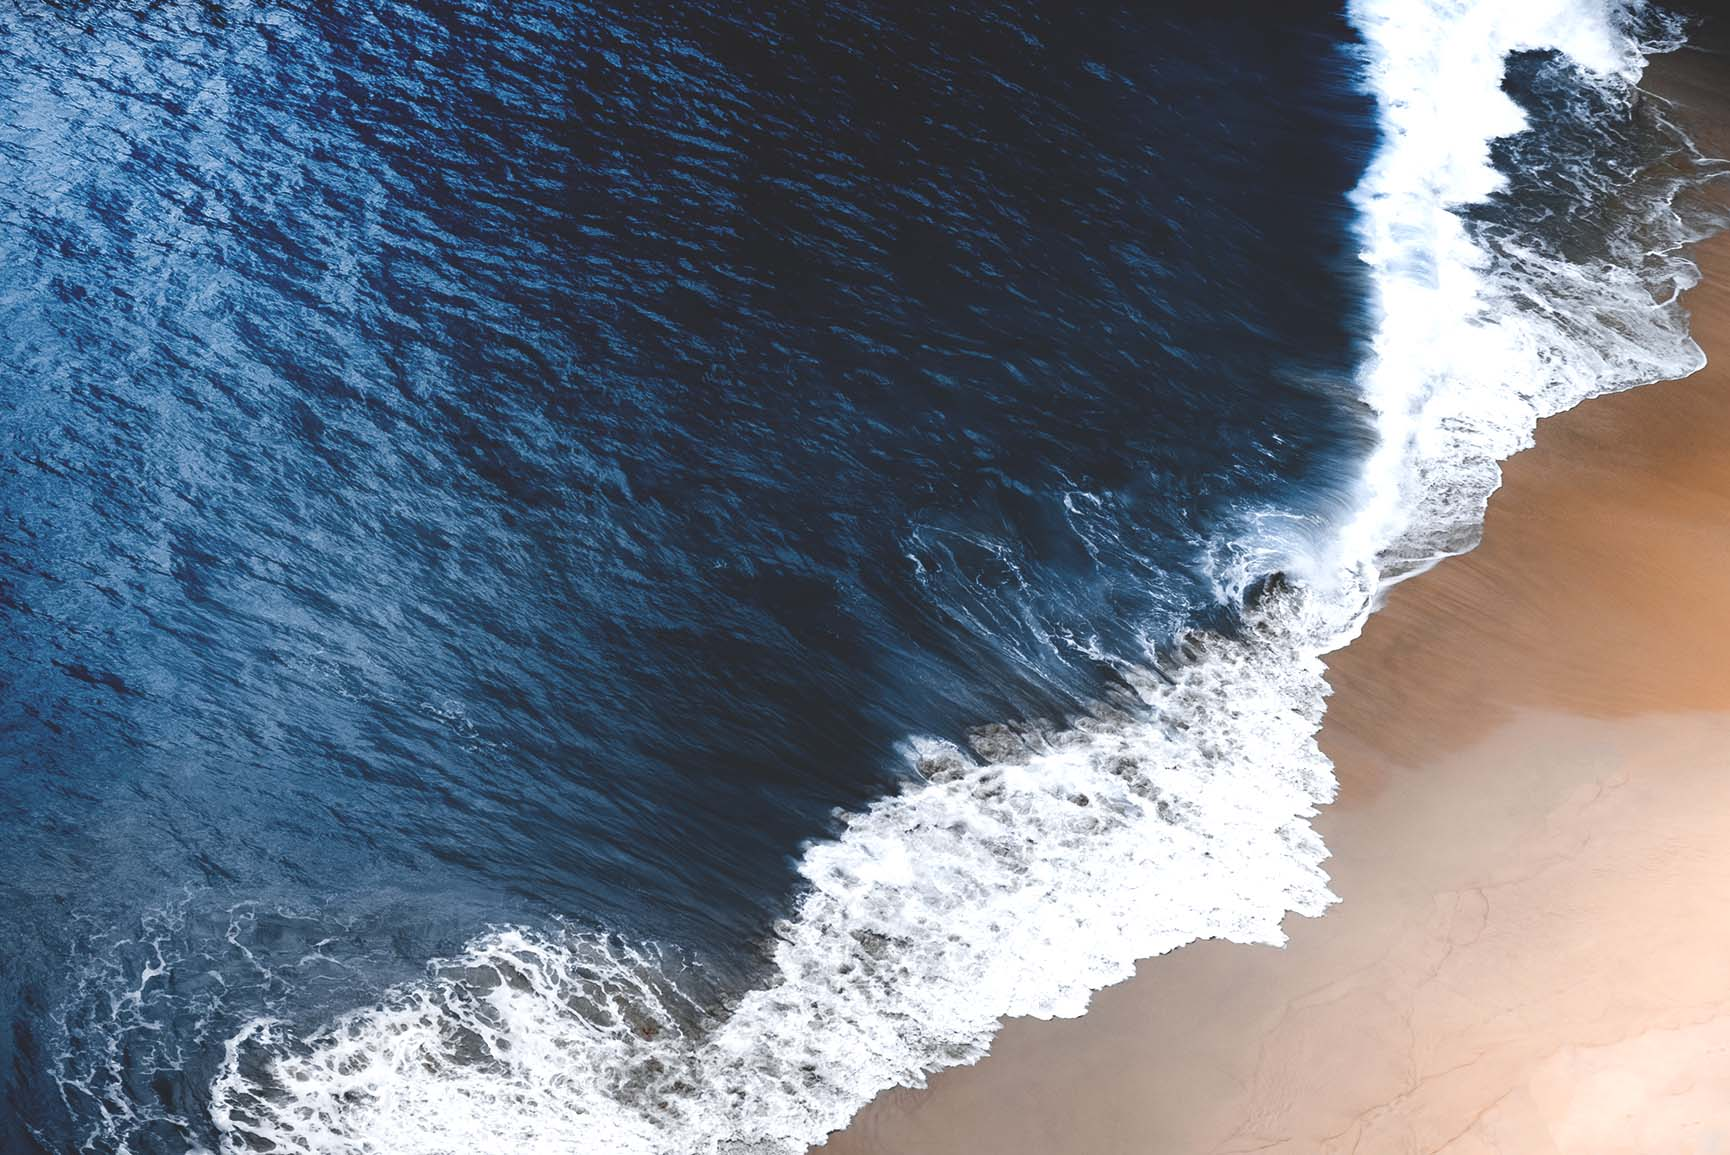 10 Refreshing Oceanic Iphone Xs Max Wallpapers Preppy Wallpapers